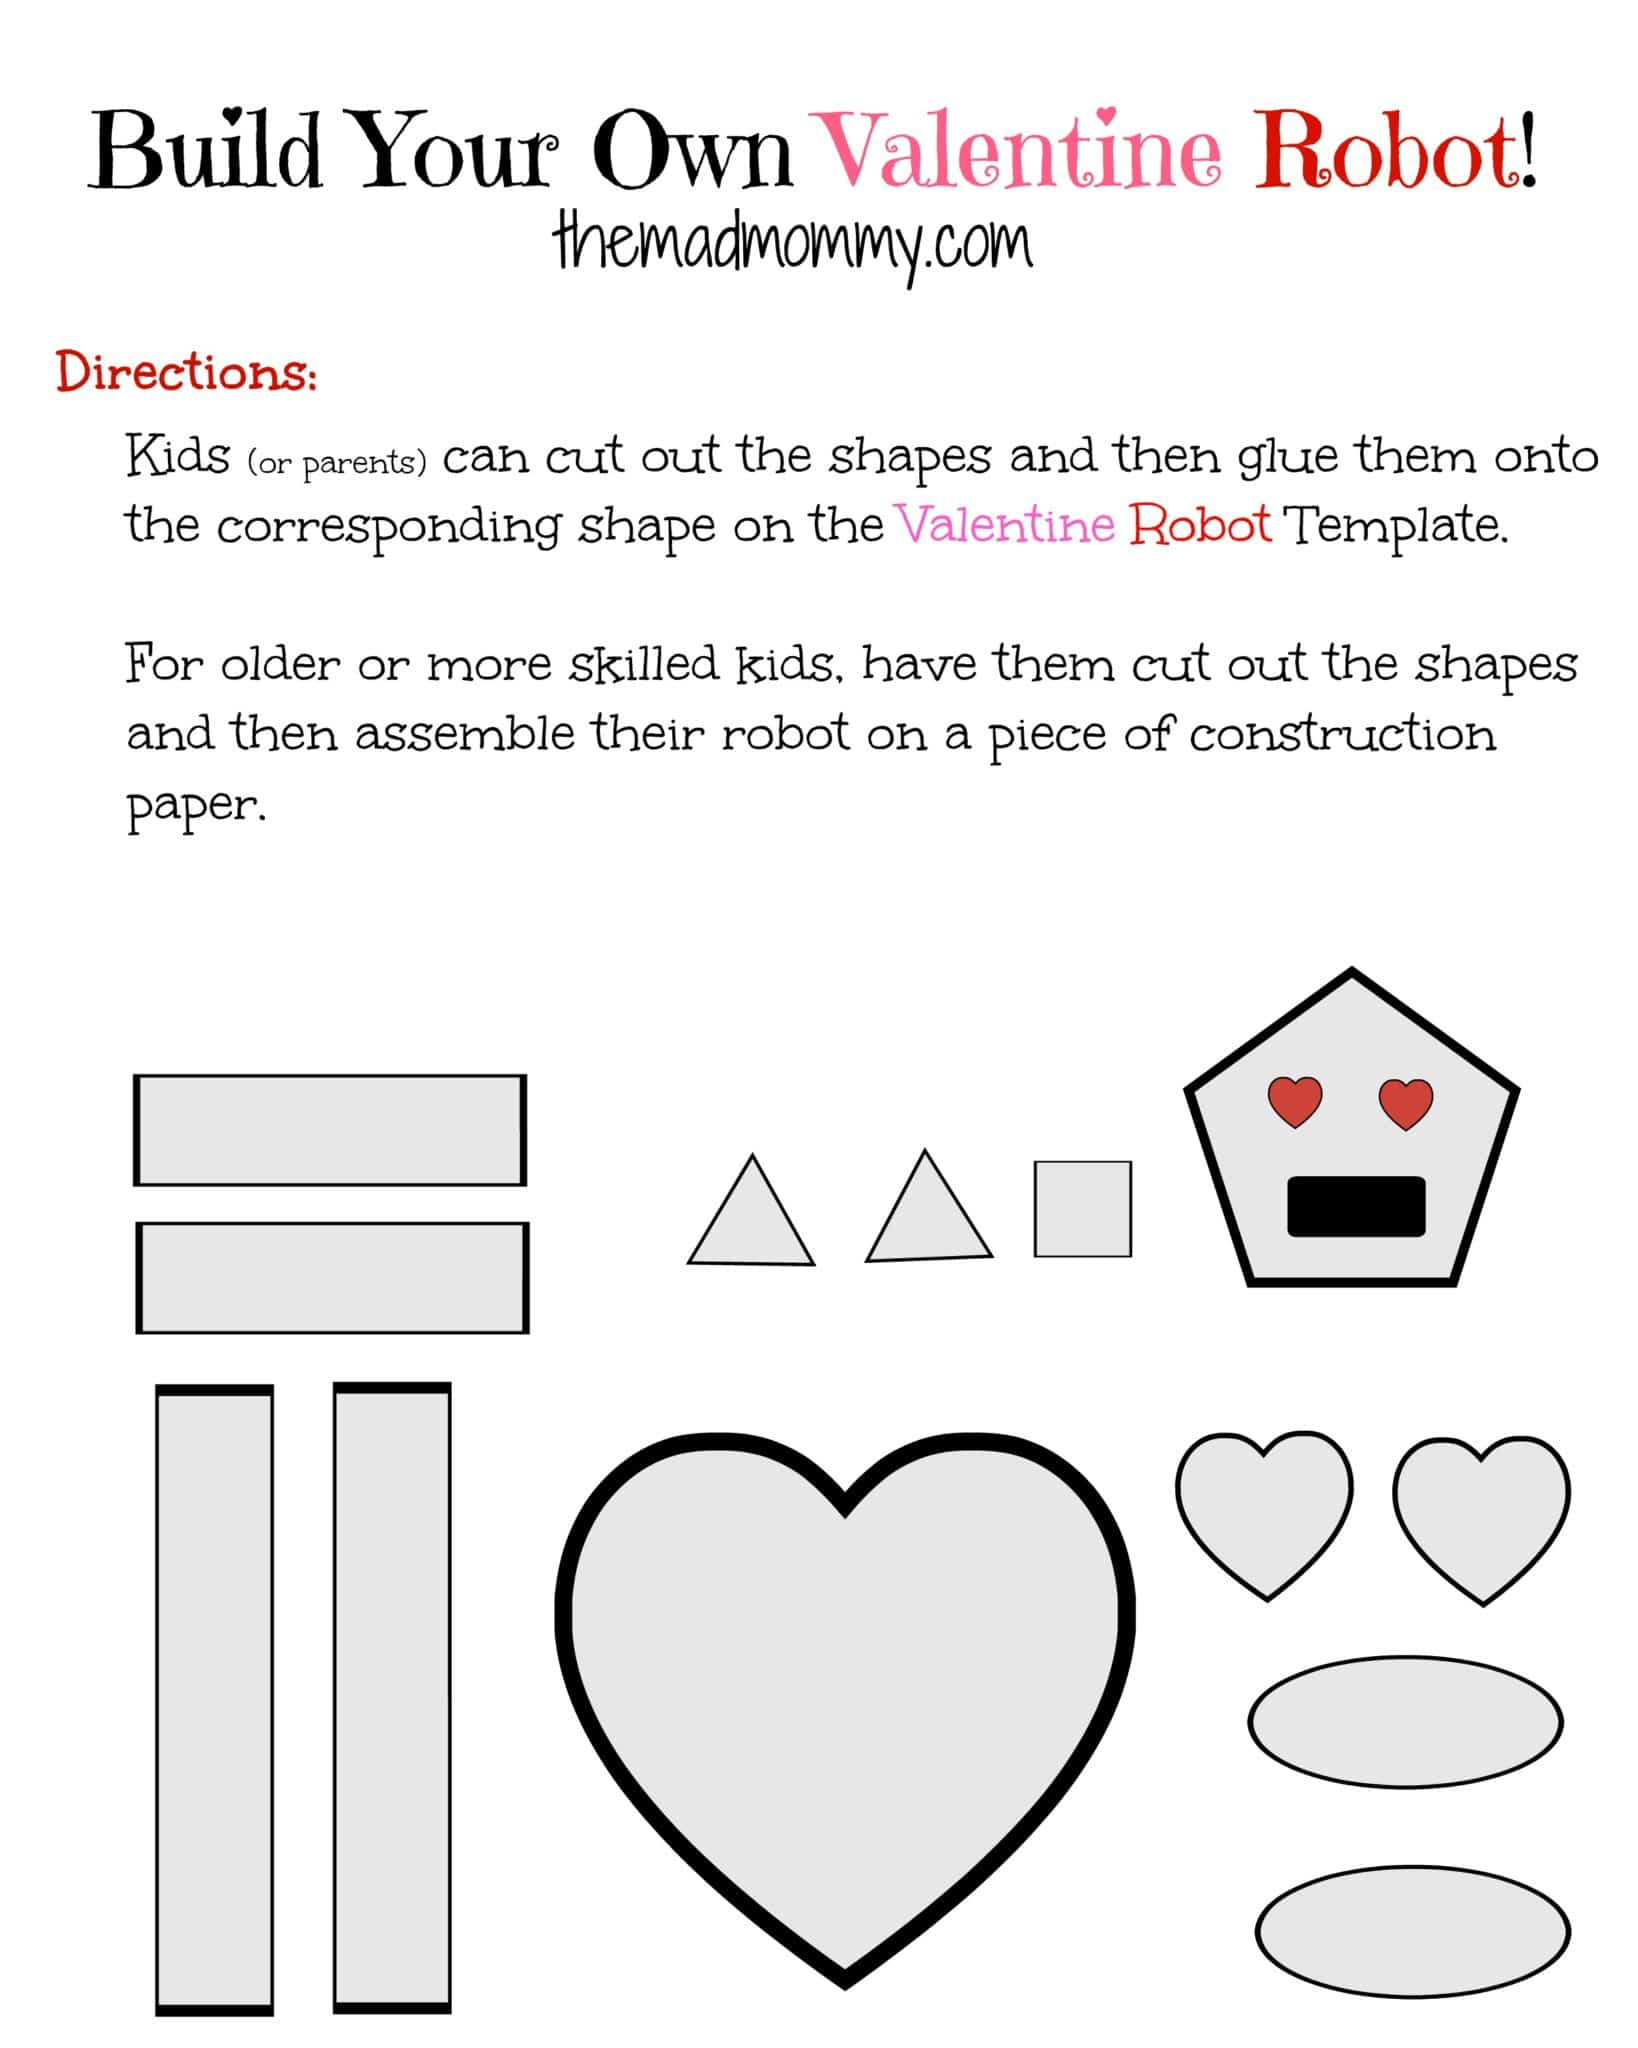 Build Your Own Valentine Robot